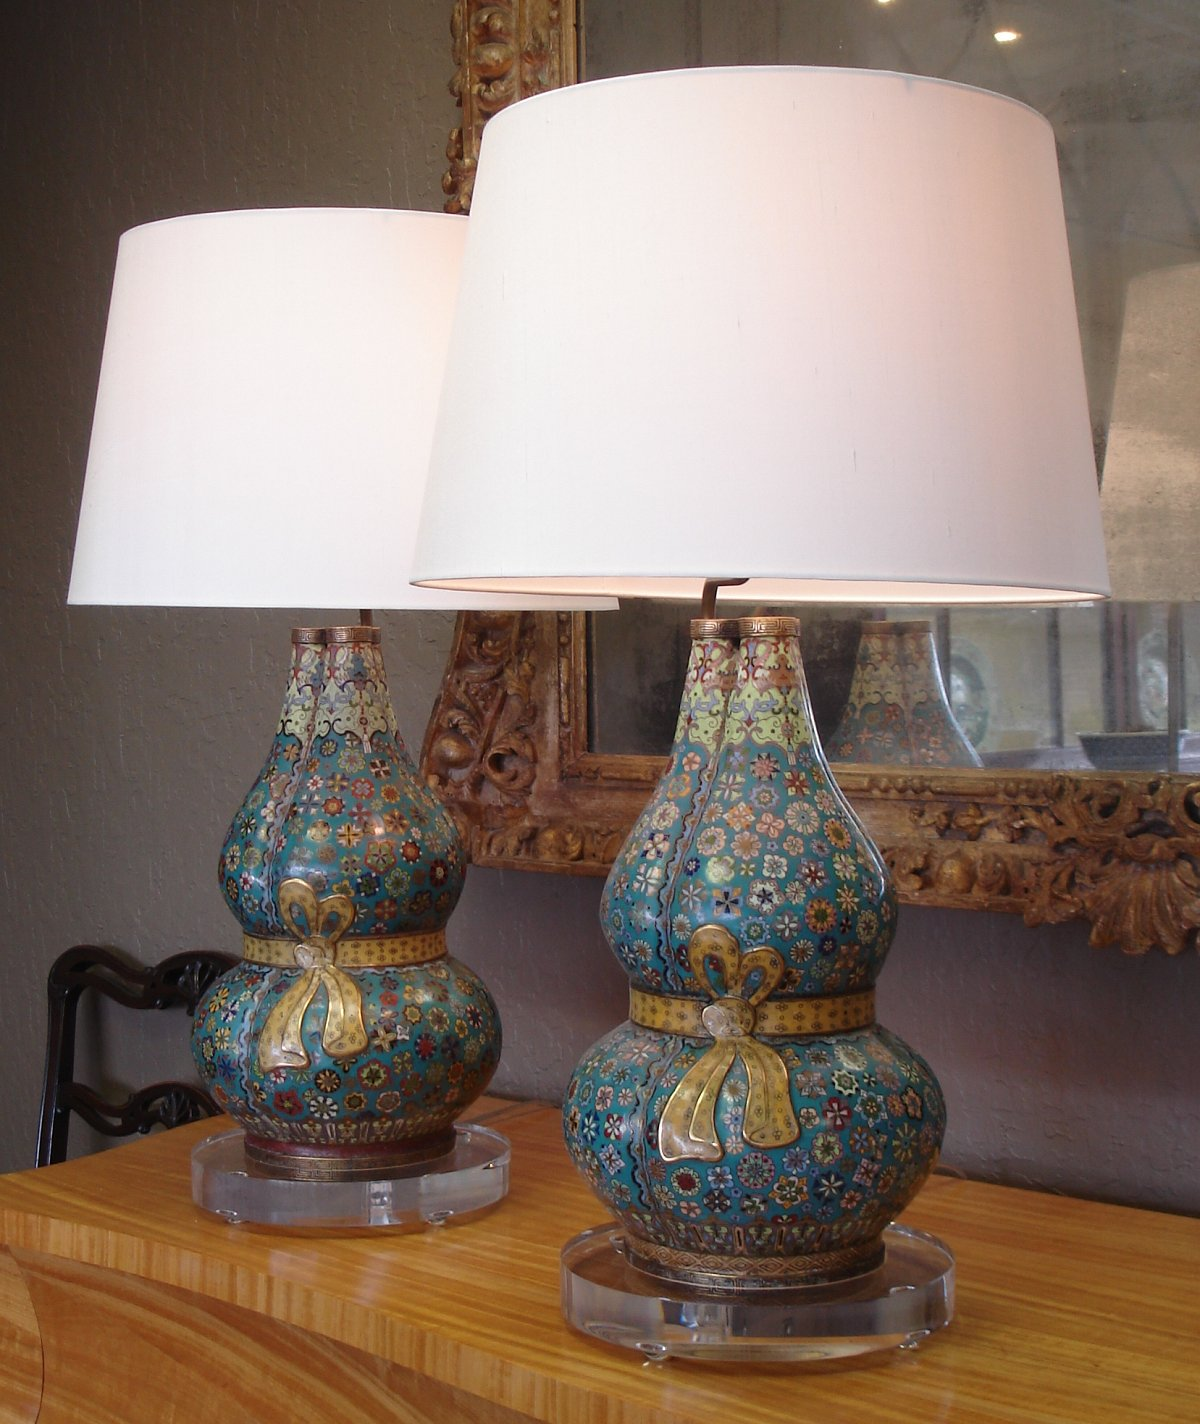 Wonderful Pair Of Cloisonné Triple Gourd Vases, Now As Lamp Bases